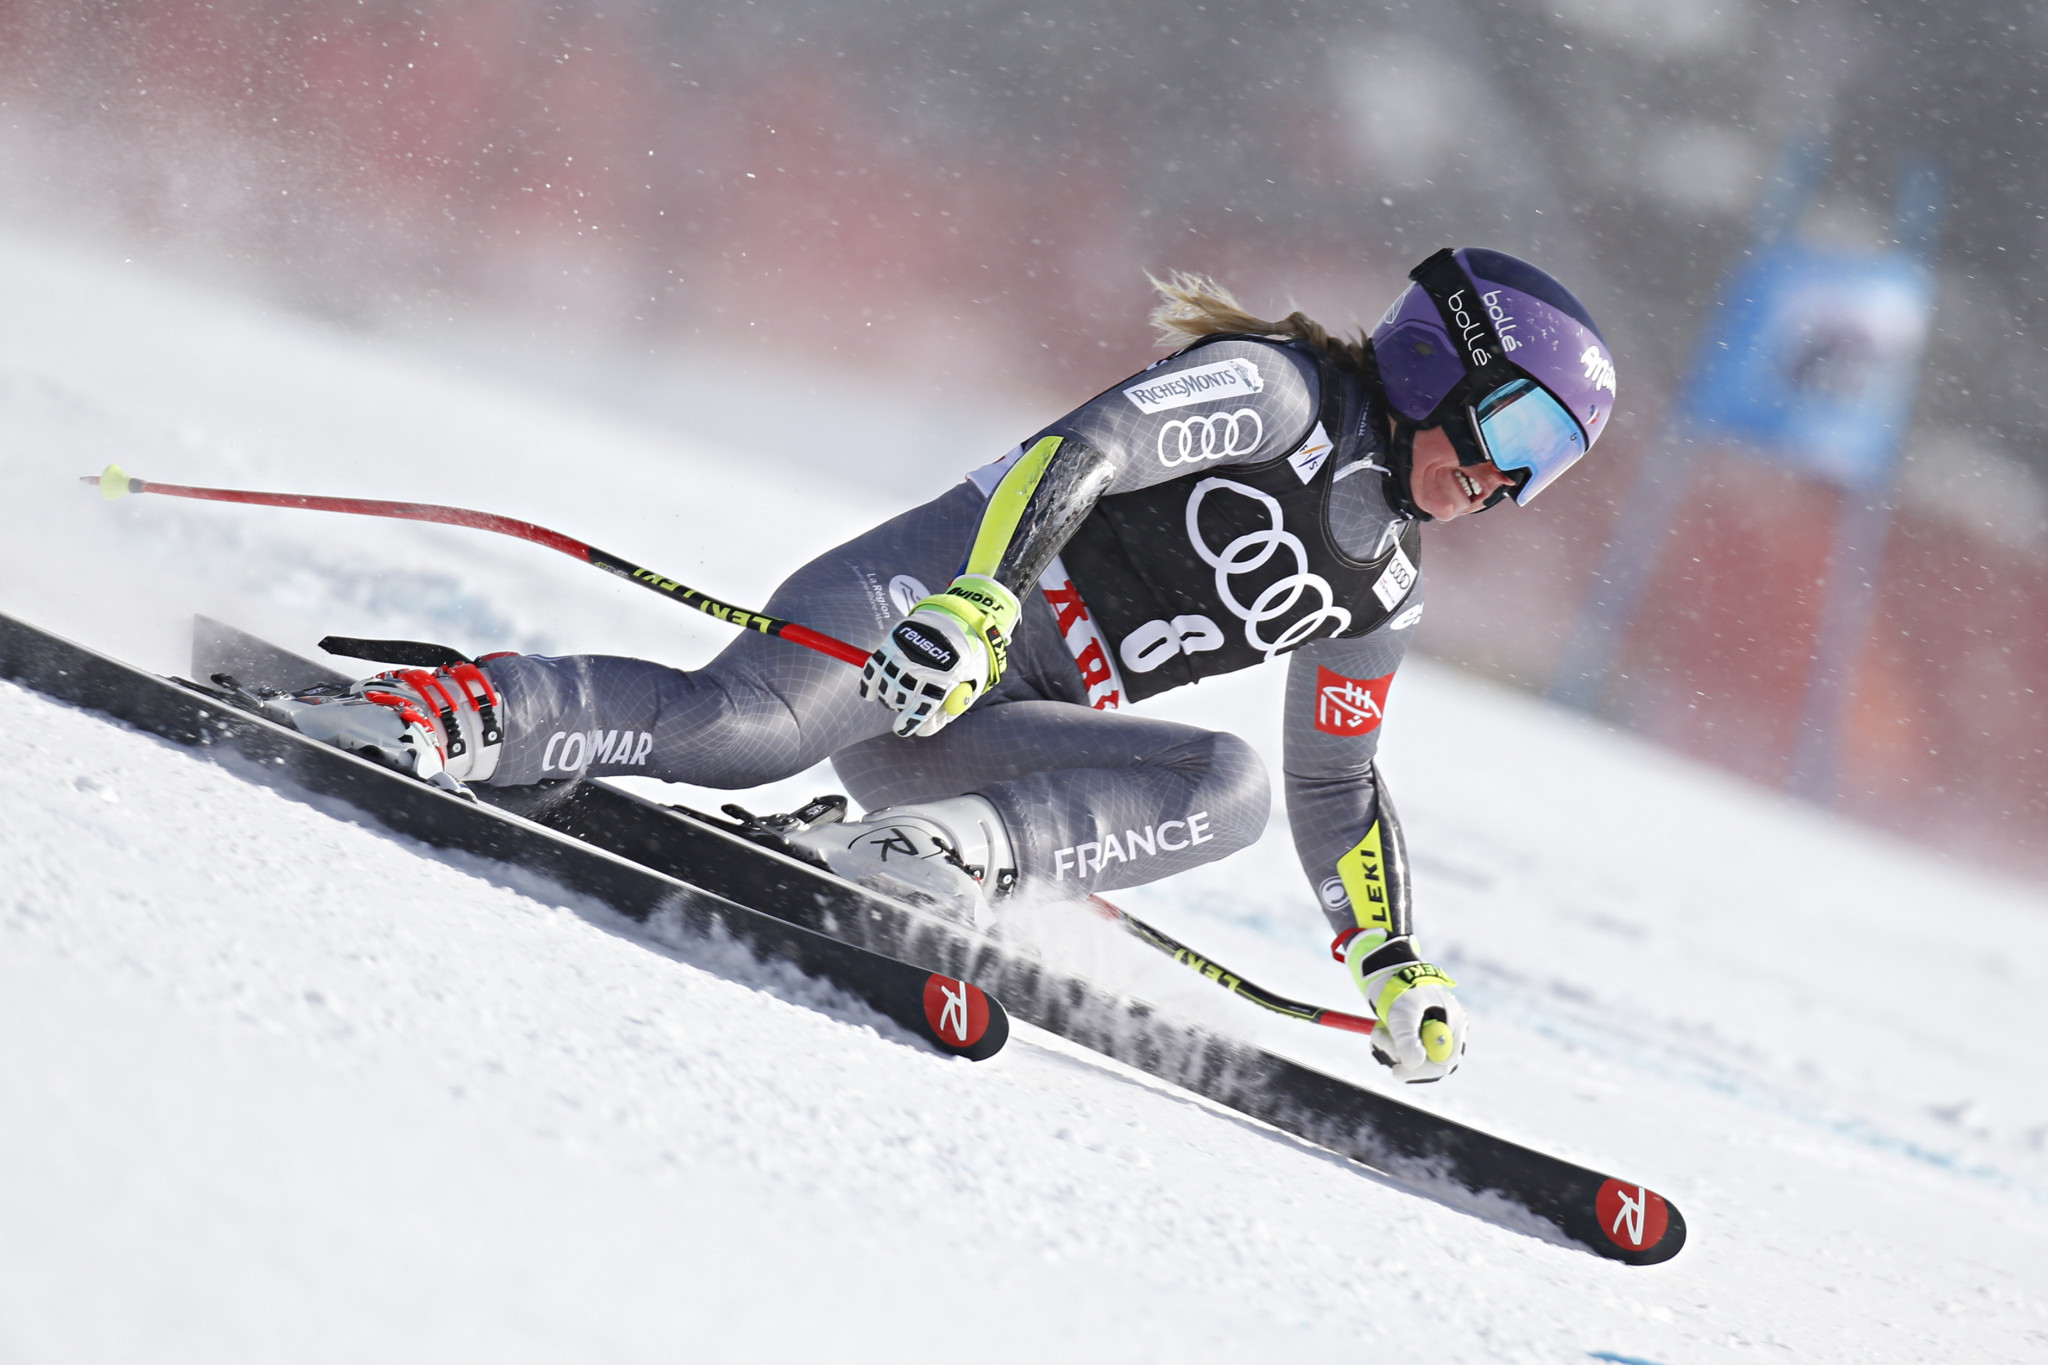 Reigning world giant slalom champion Tessa Worley has been selected on the women's team ©Getty Images